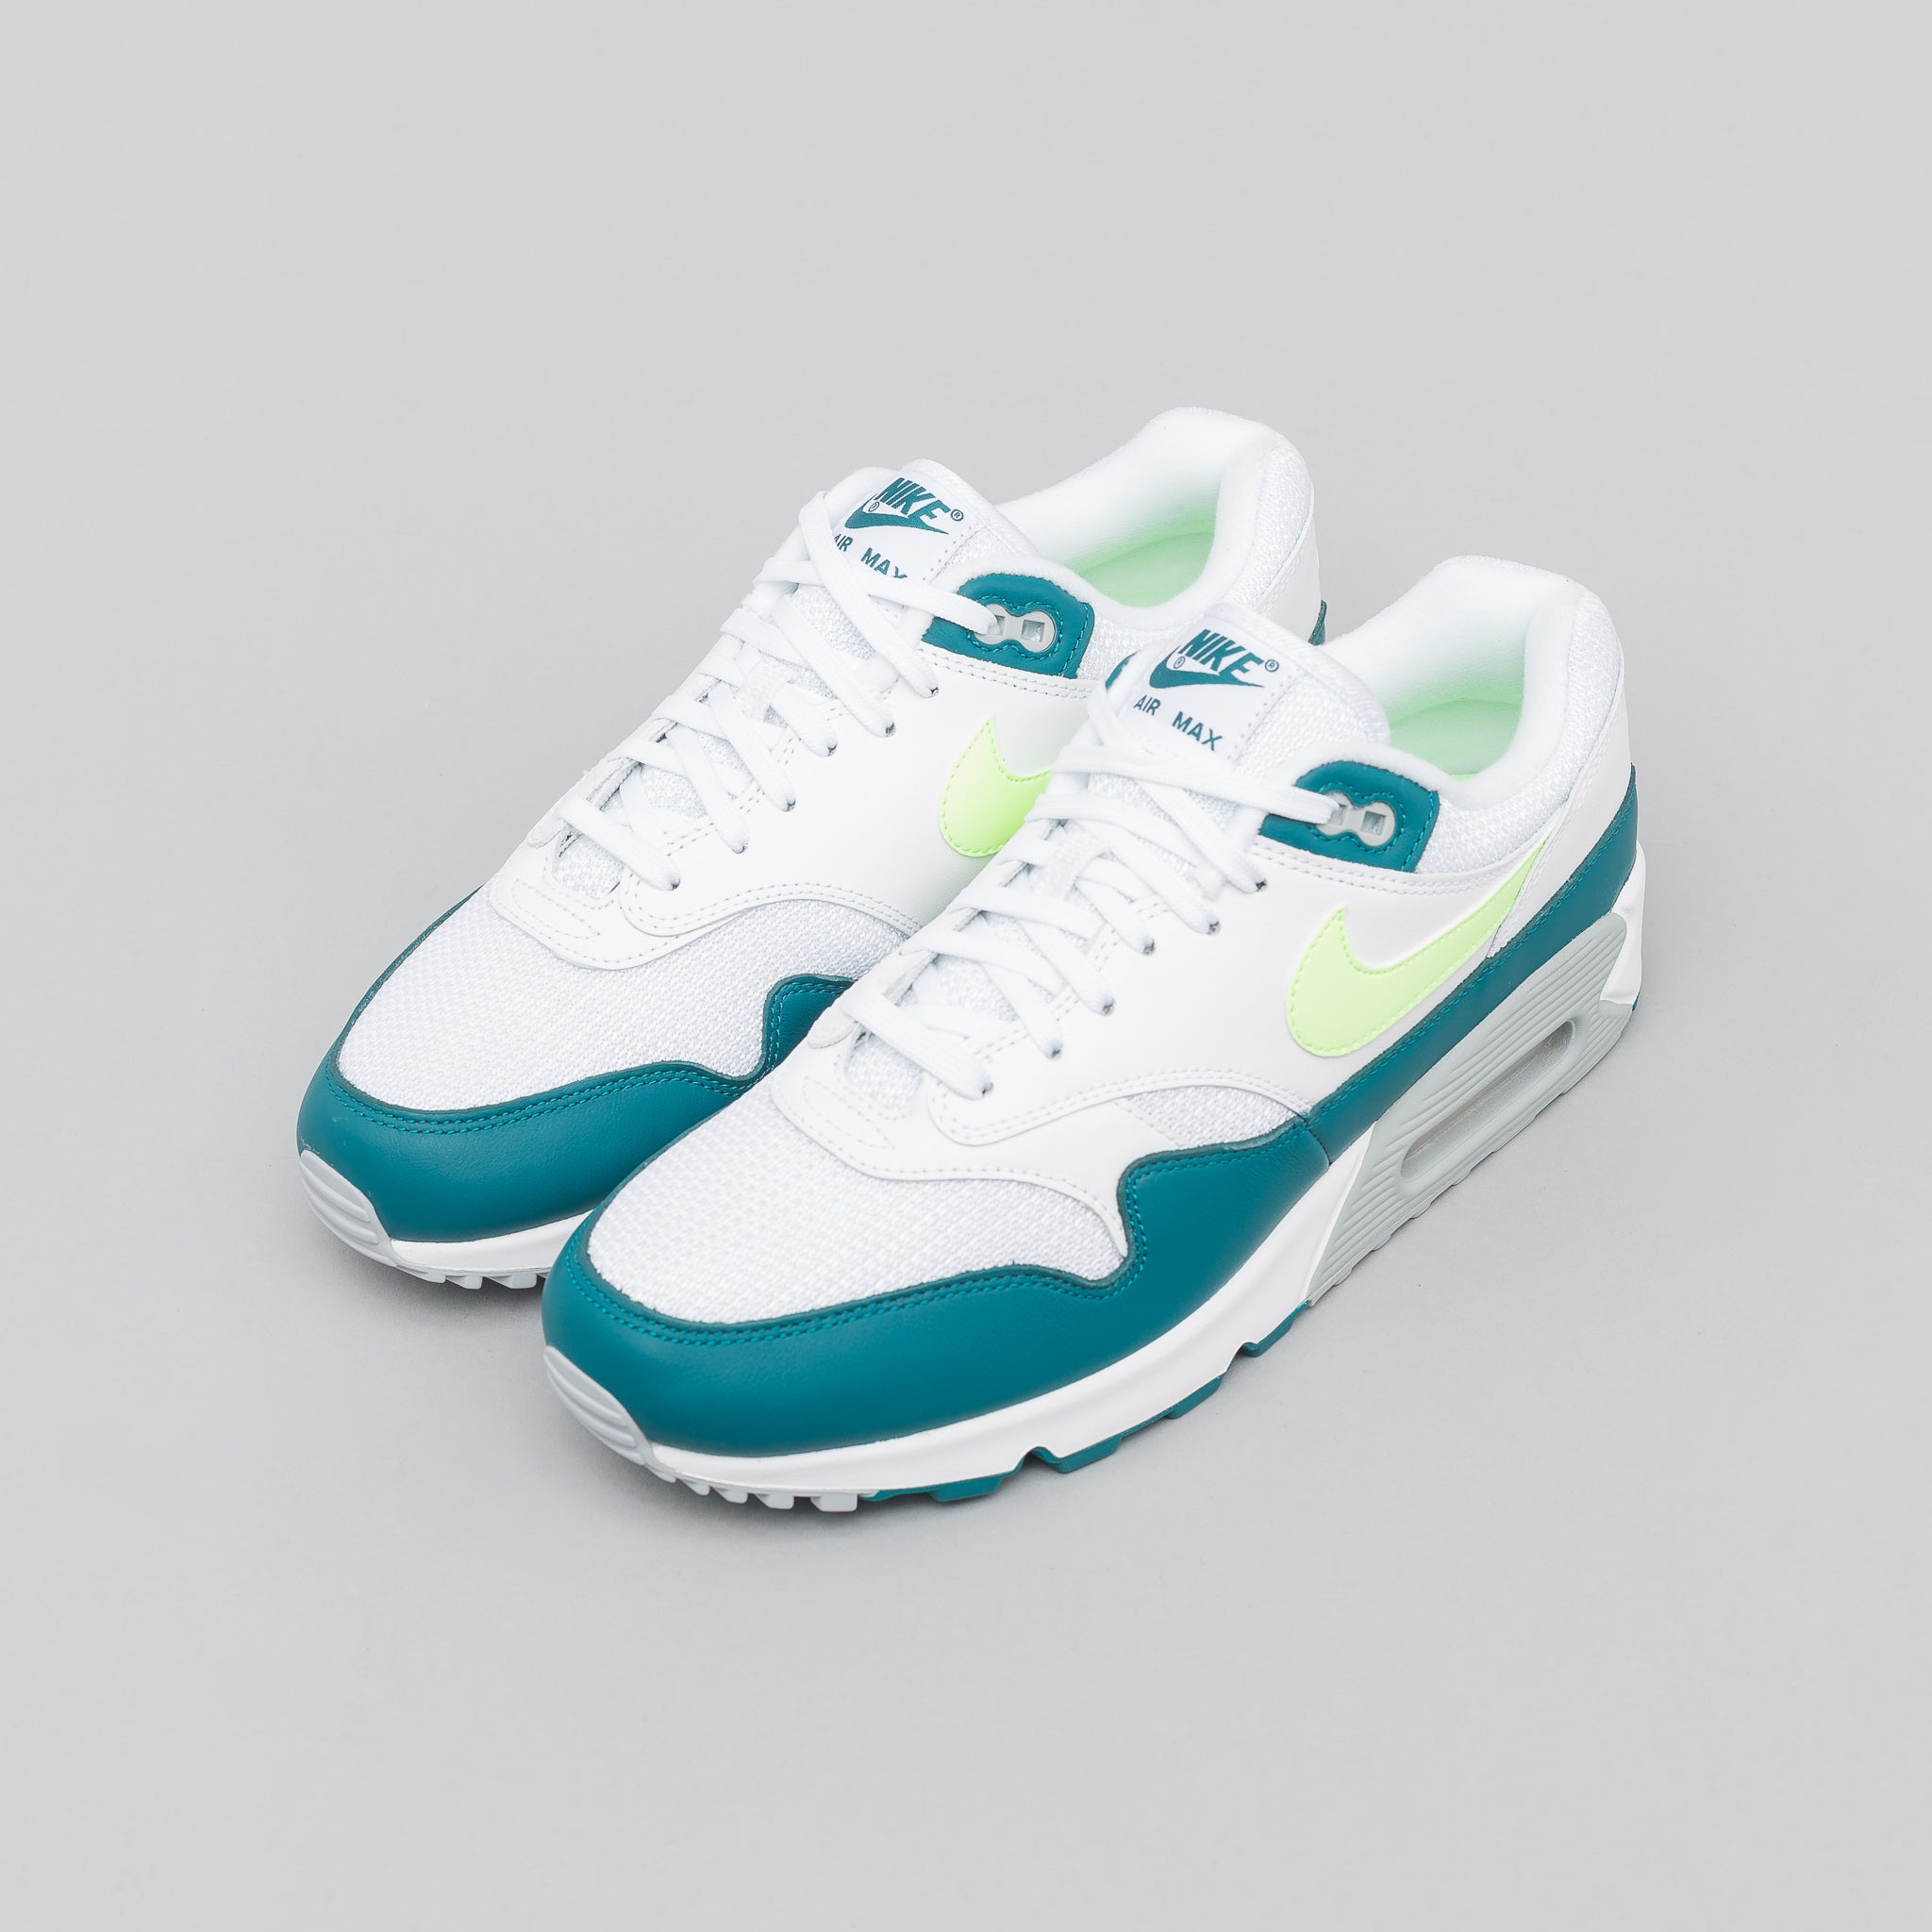 01fa19736a ... where to buy air max 90 1 in white lime 87f05 47c01